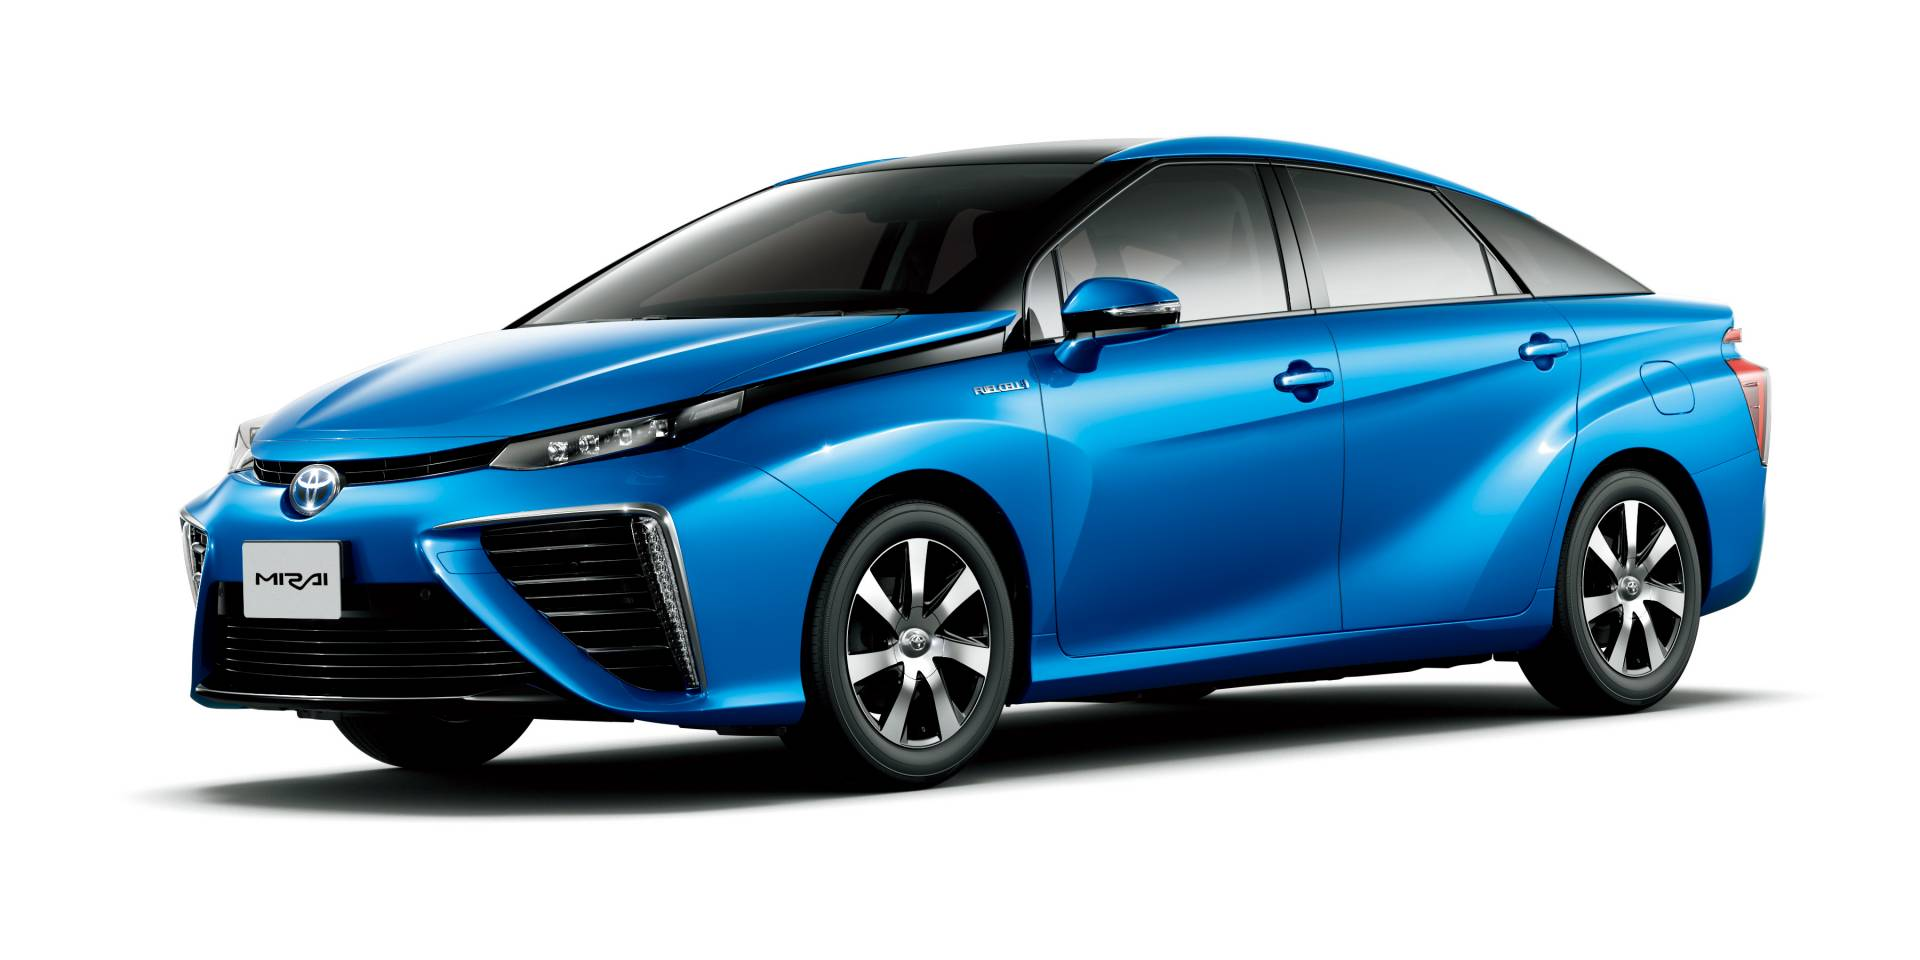 Updated-Toyota-Concept-i-and-e-Palette-for-Tokyo-Olympic-Games-2020-8